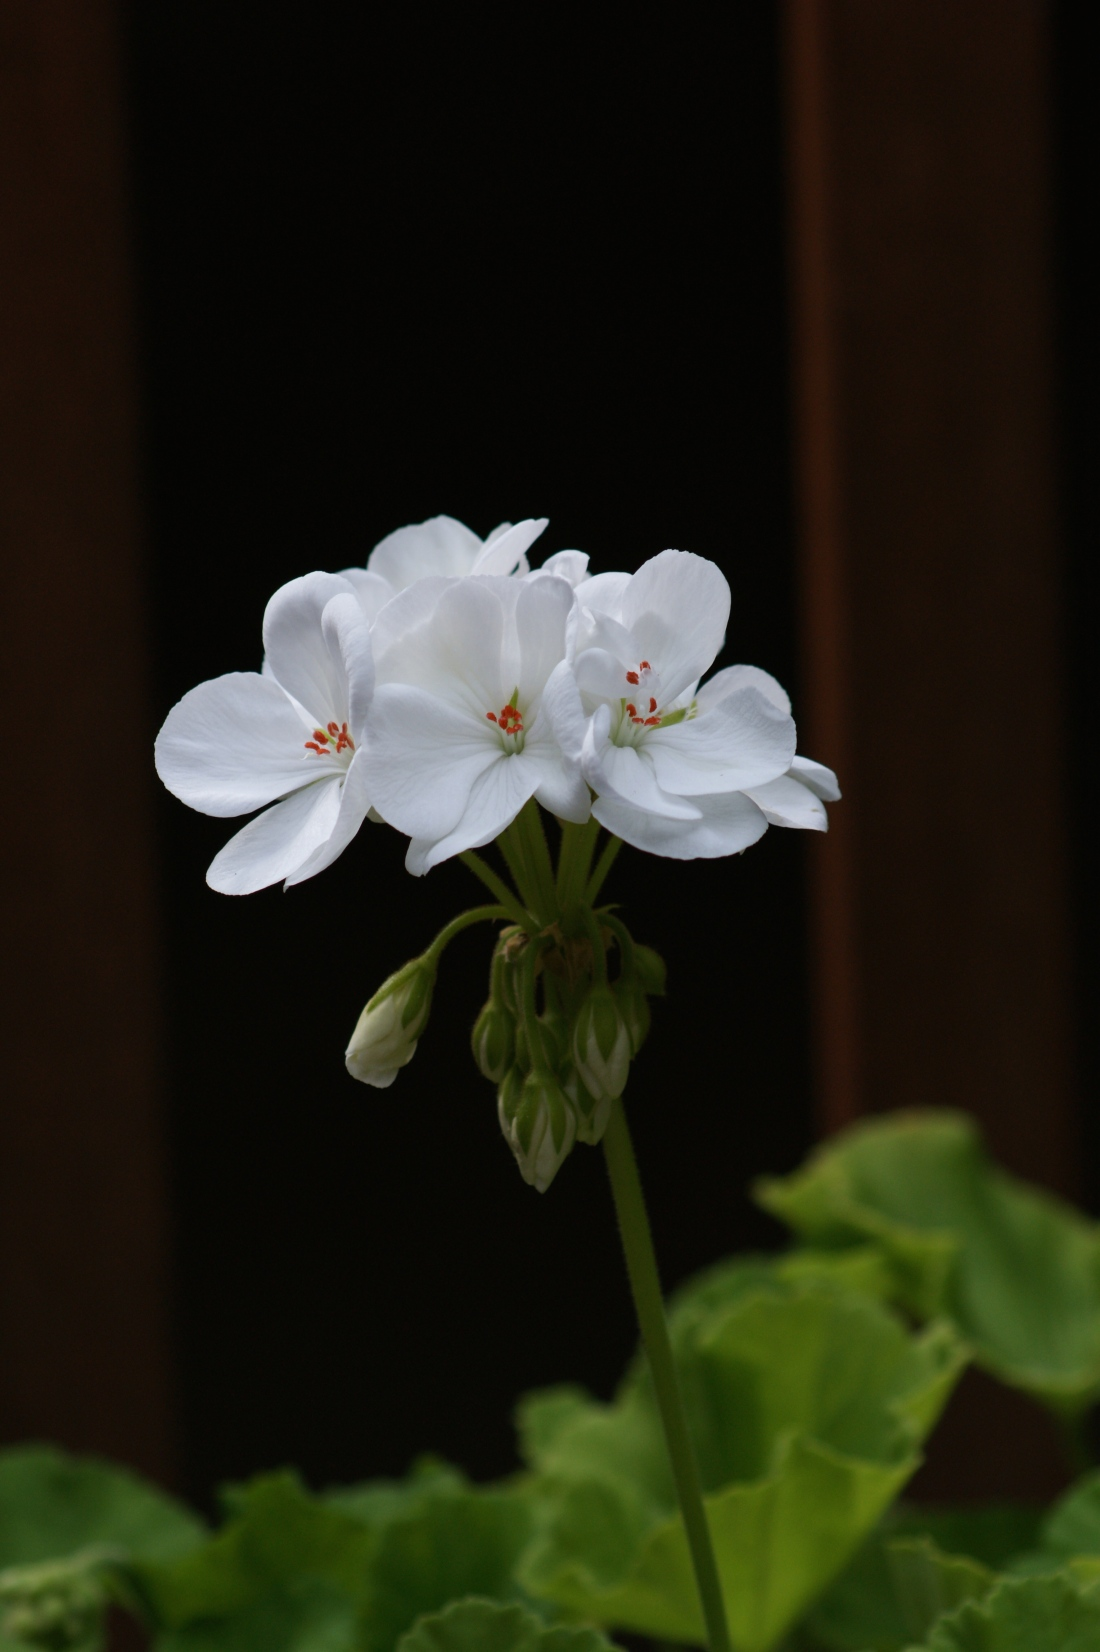 The geraniums are starting to look a little spindly but have a few fresh summer colors left in them.